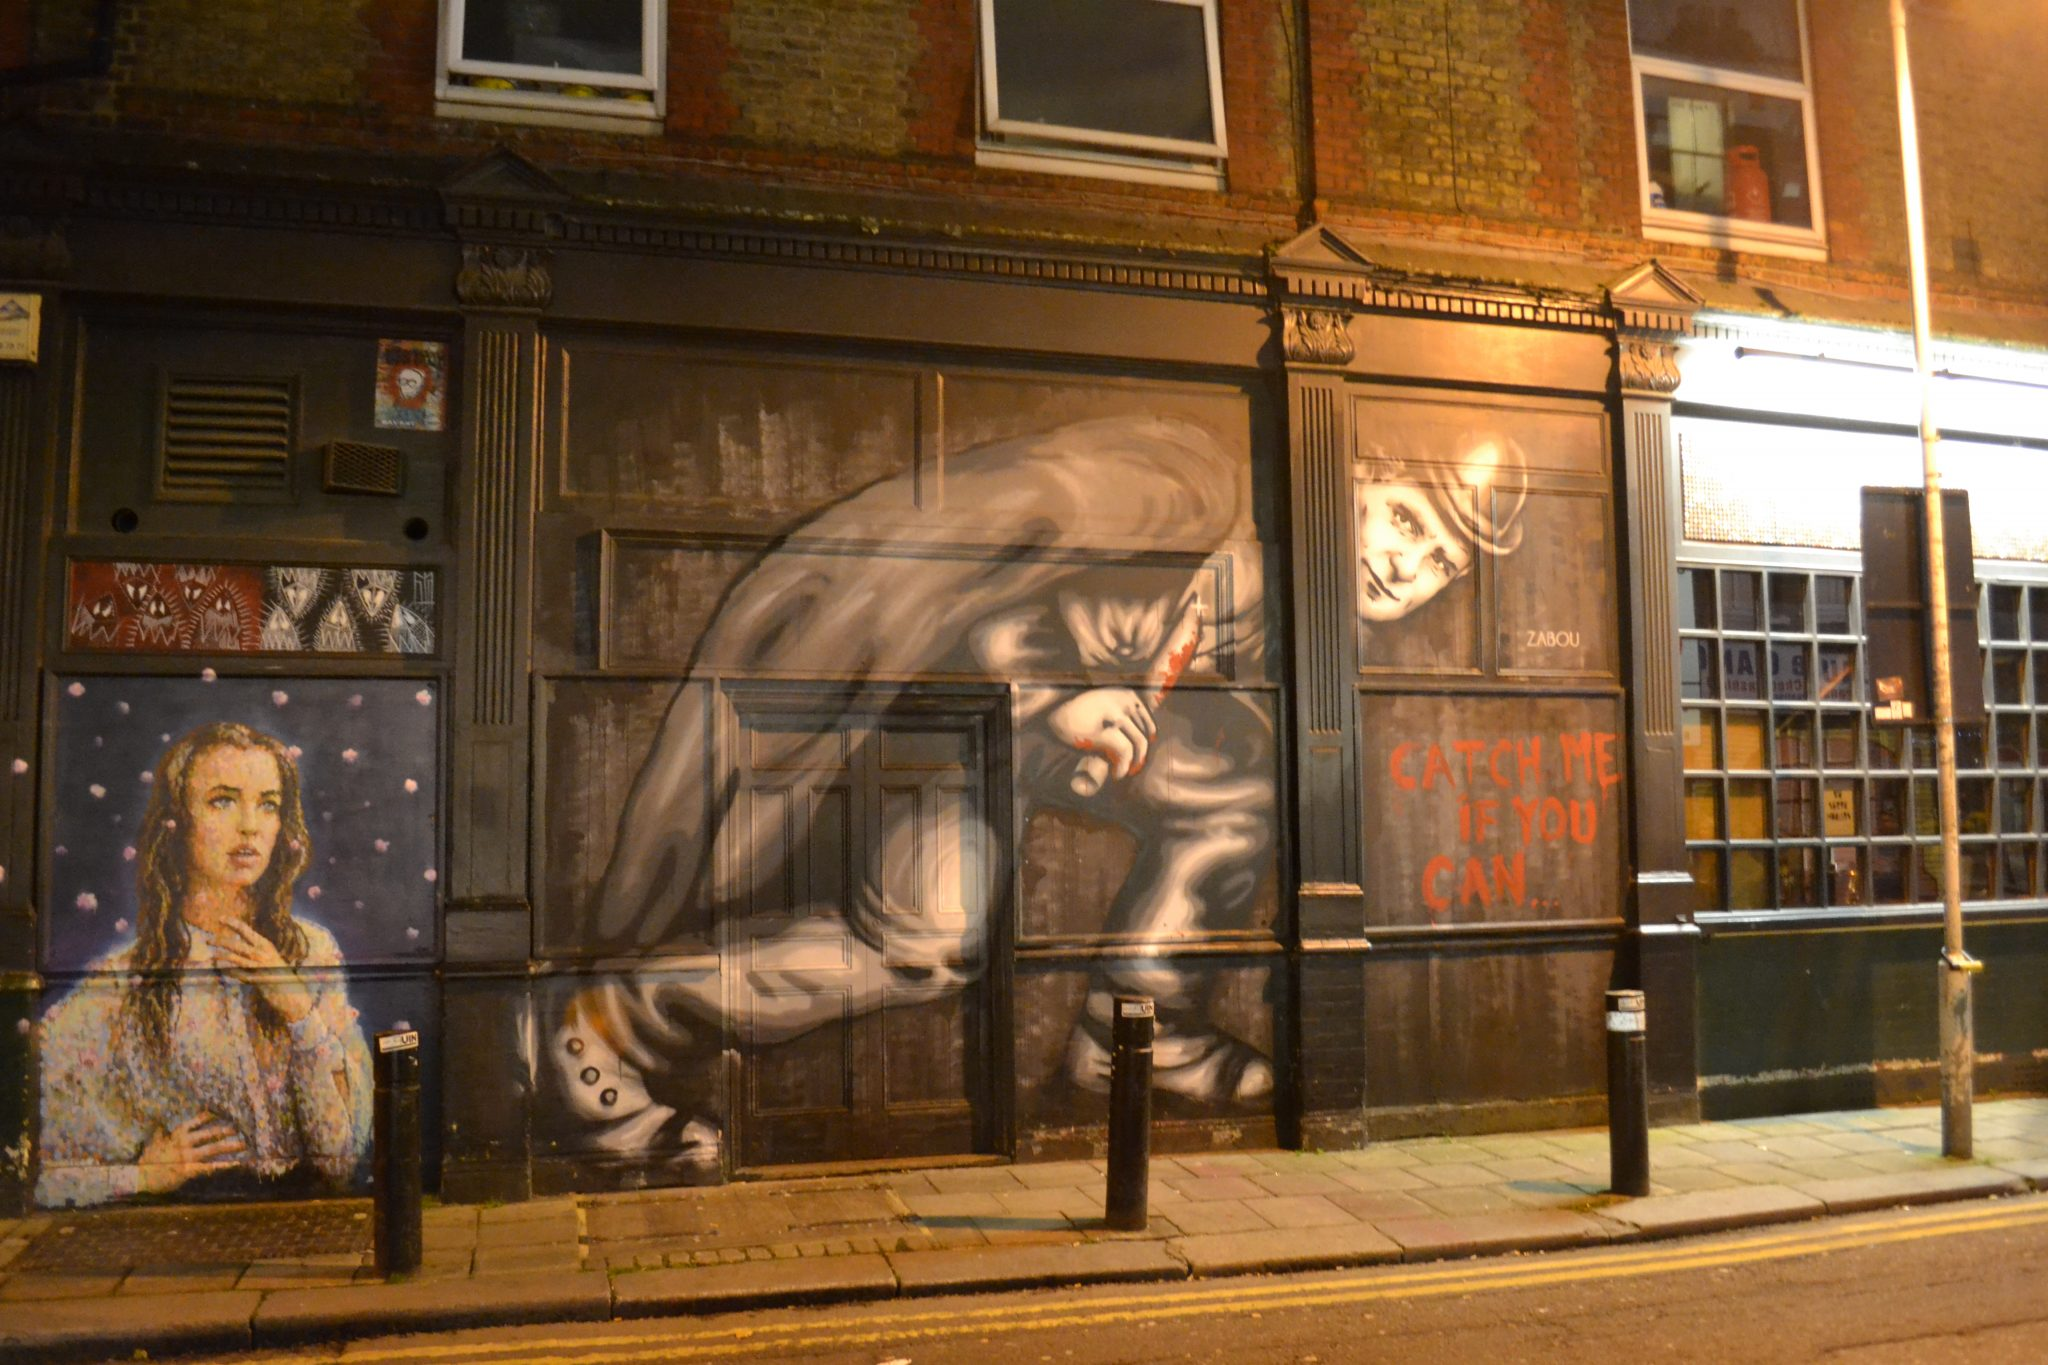 Travel Diary: Ein Wochenende in London | Jack the Ripper Tour